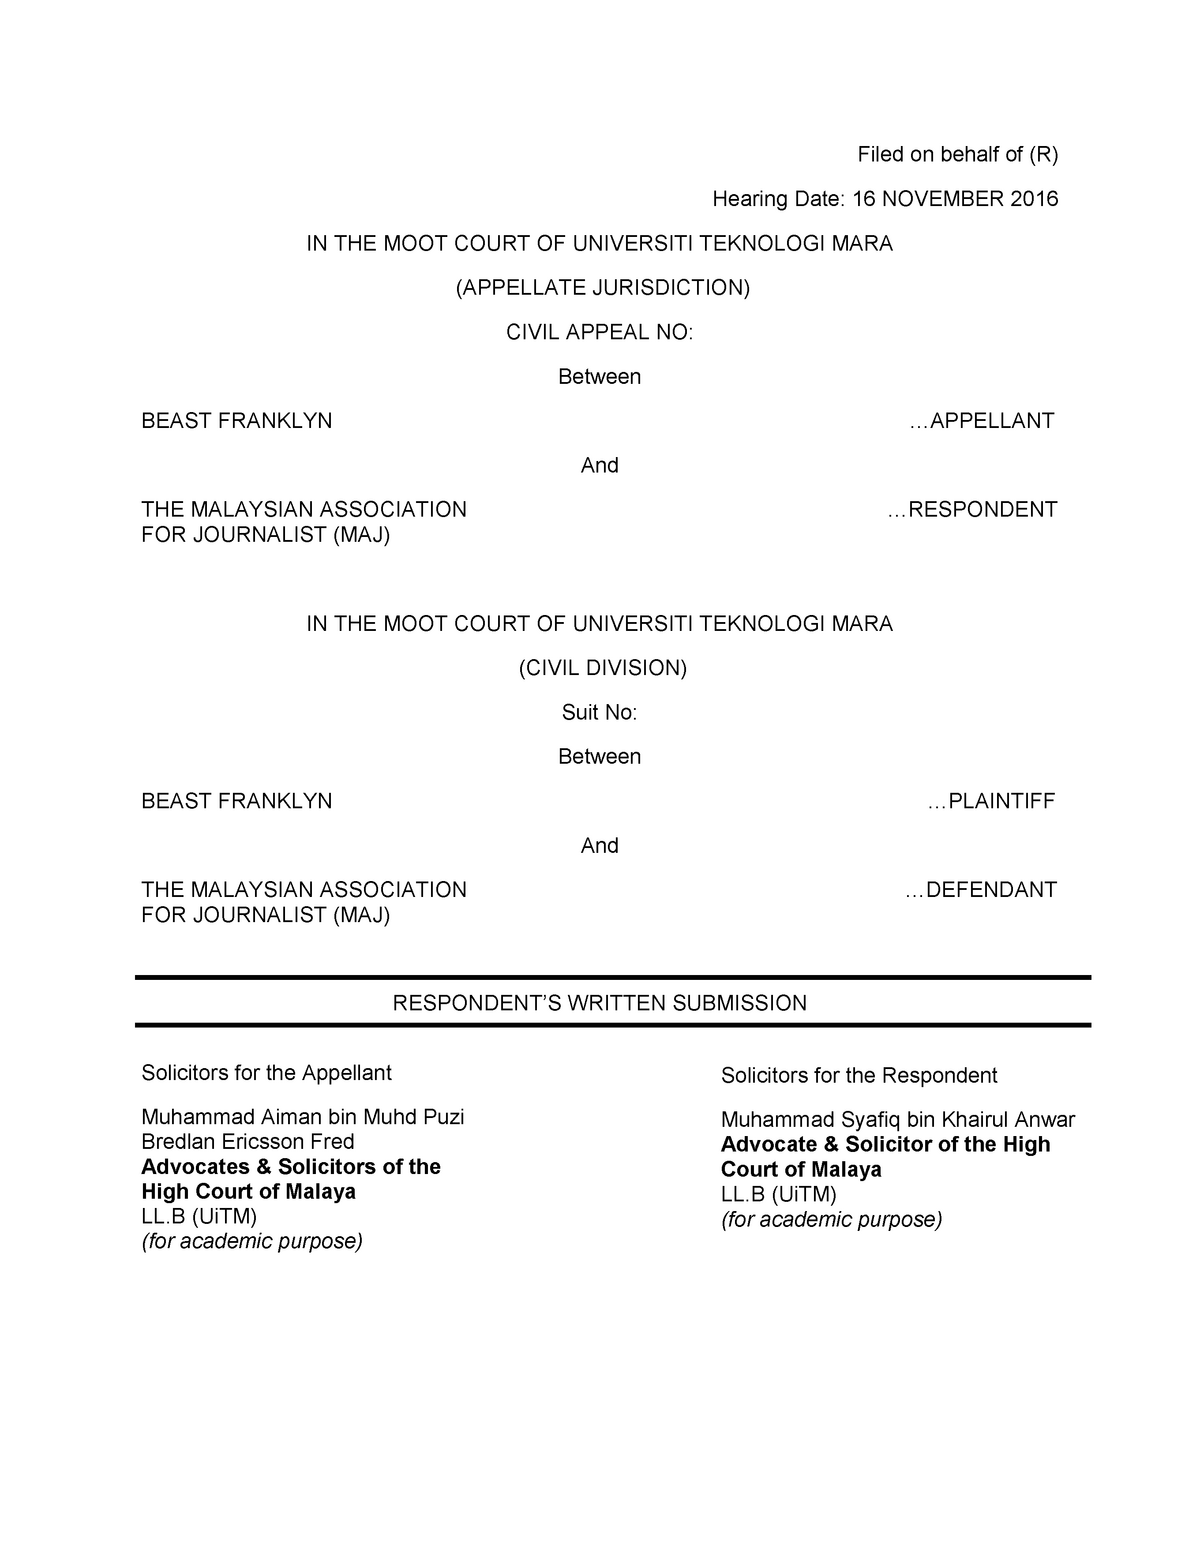 Written Submission - Pleadings - Respondent - LAW 600 - UiTM